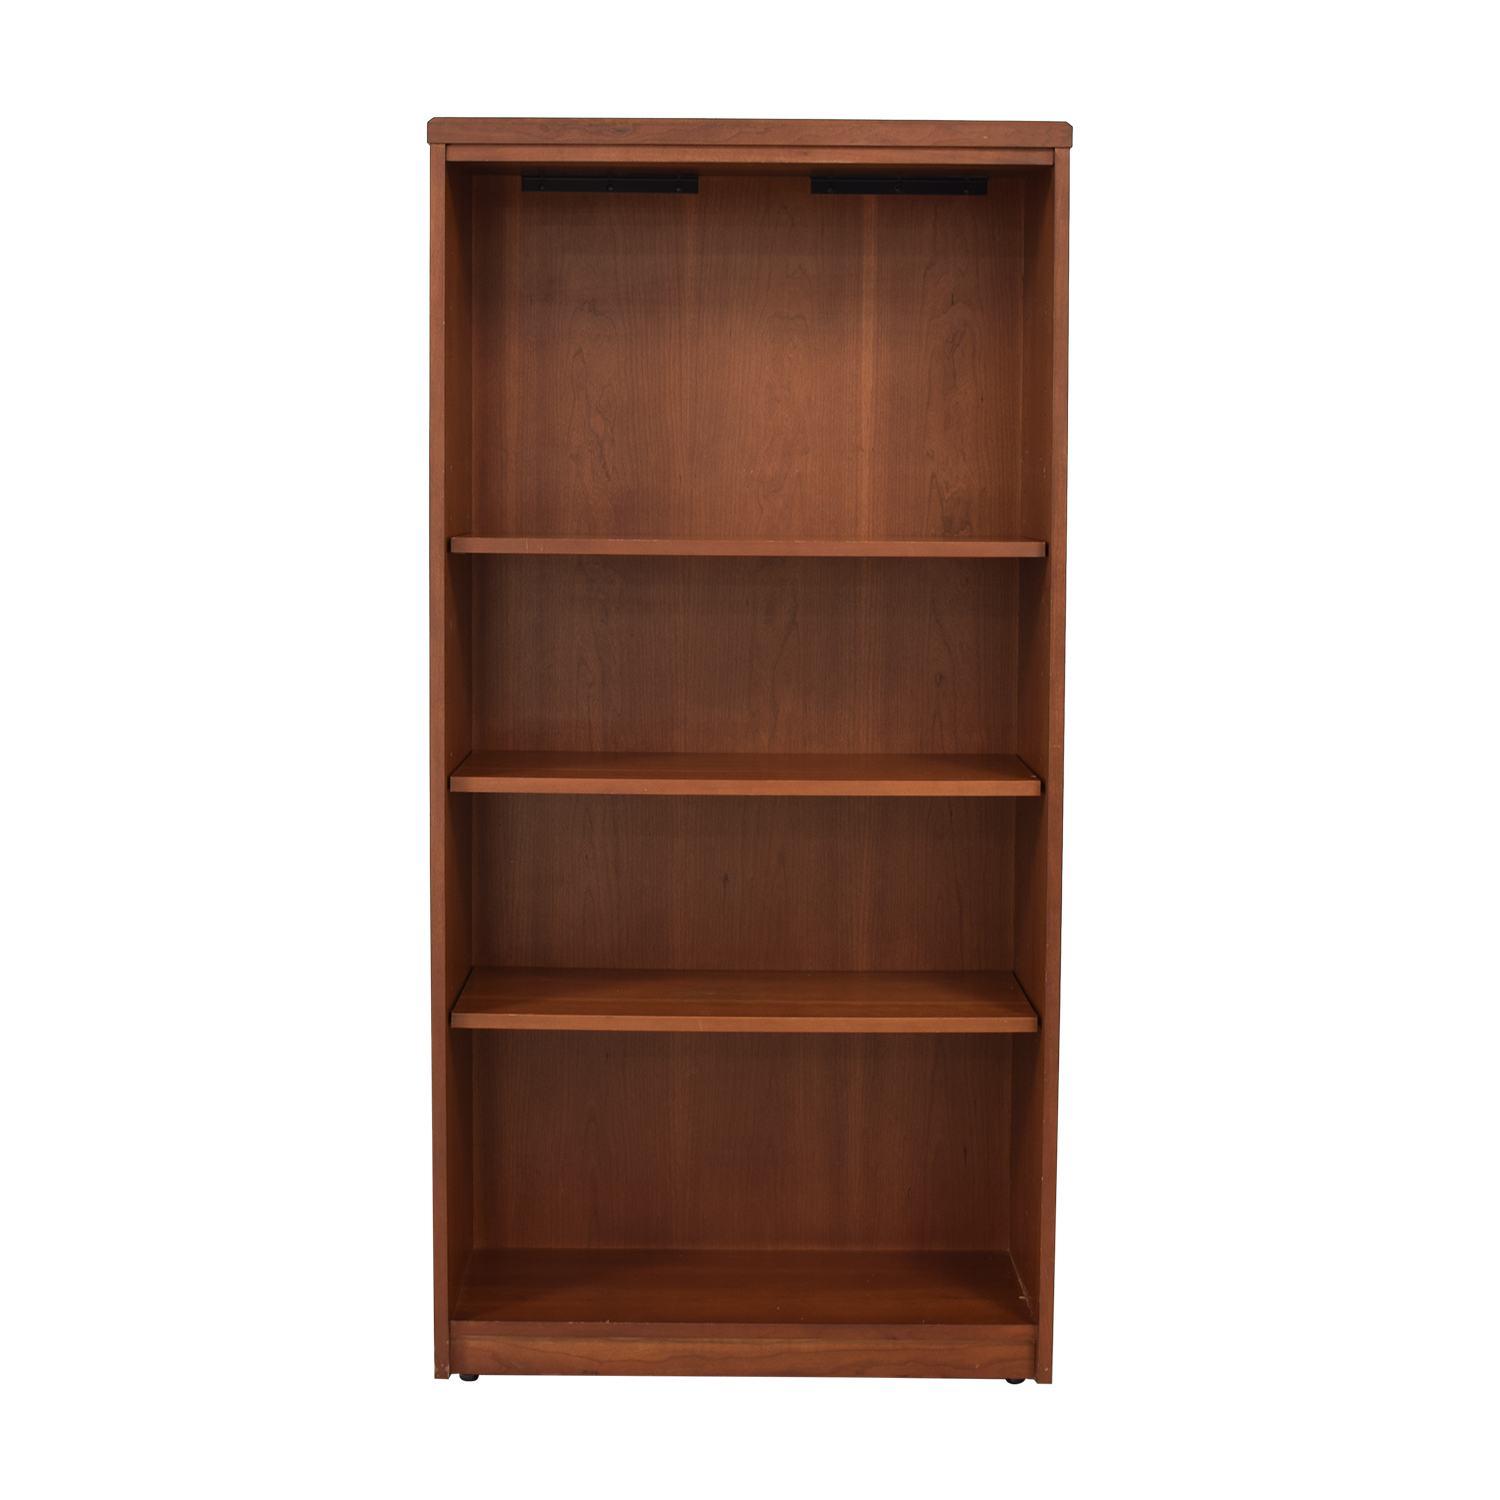 Classic Wooden Bookcase Cherry wood